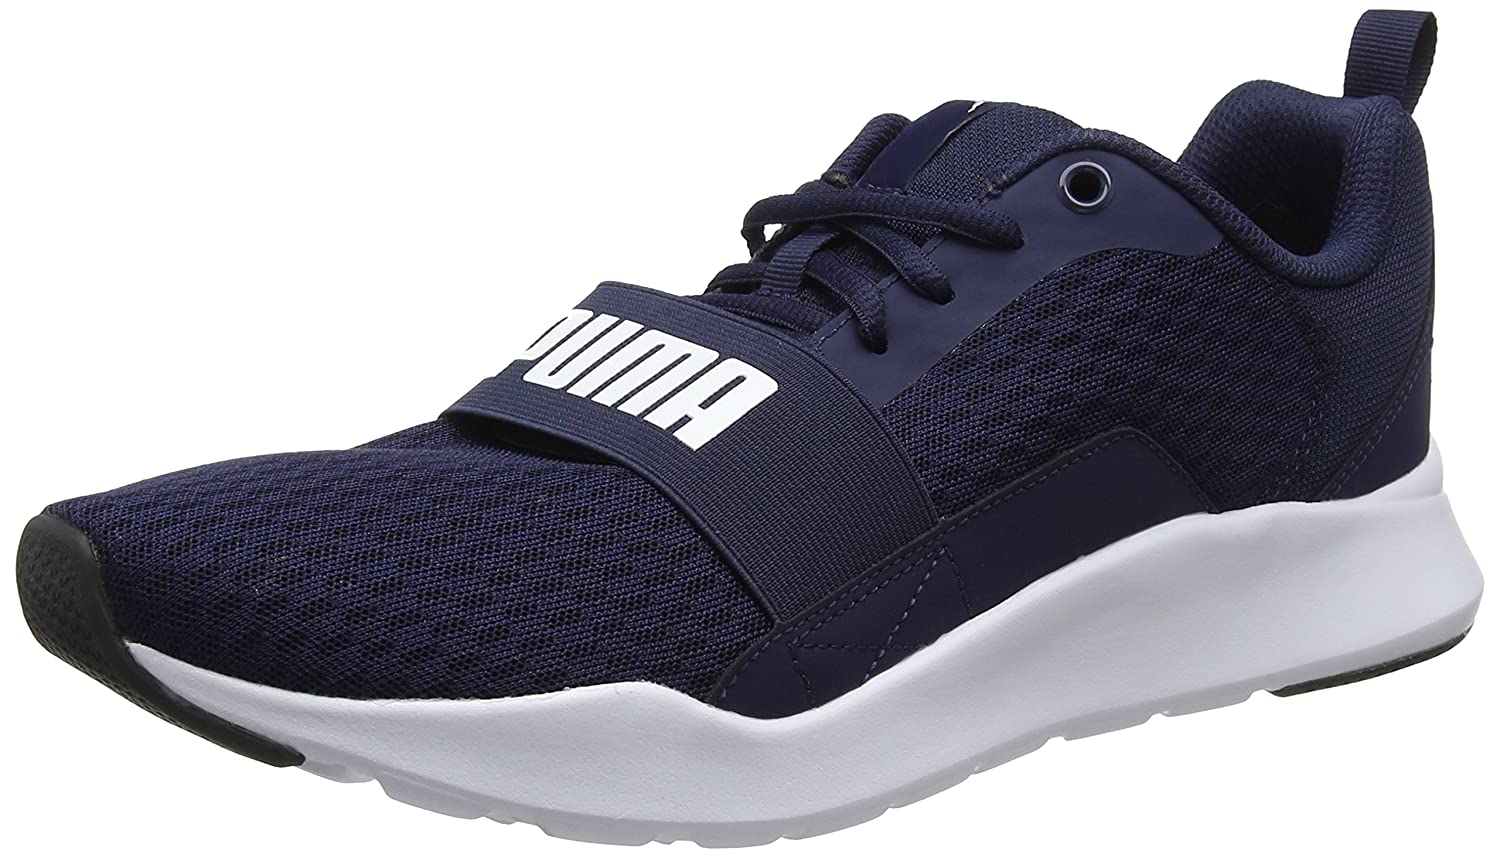 TALLA 40 EU. Puma Wired, Zapatillas Unisex Adulto